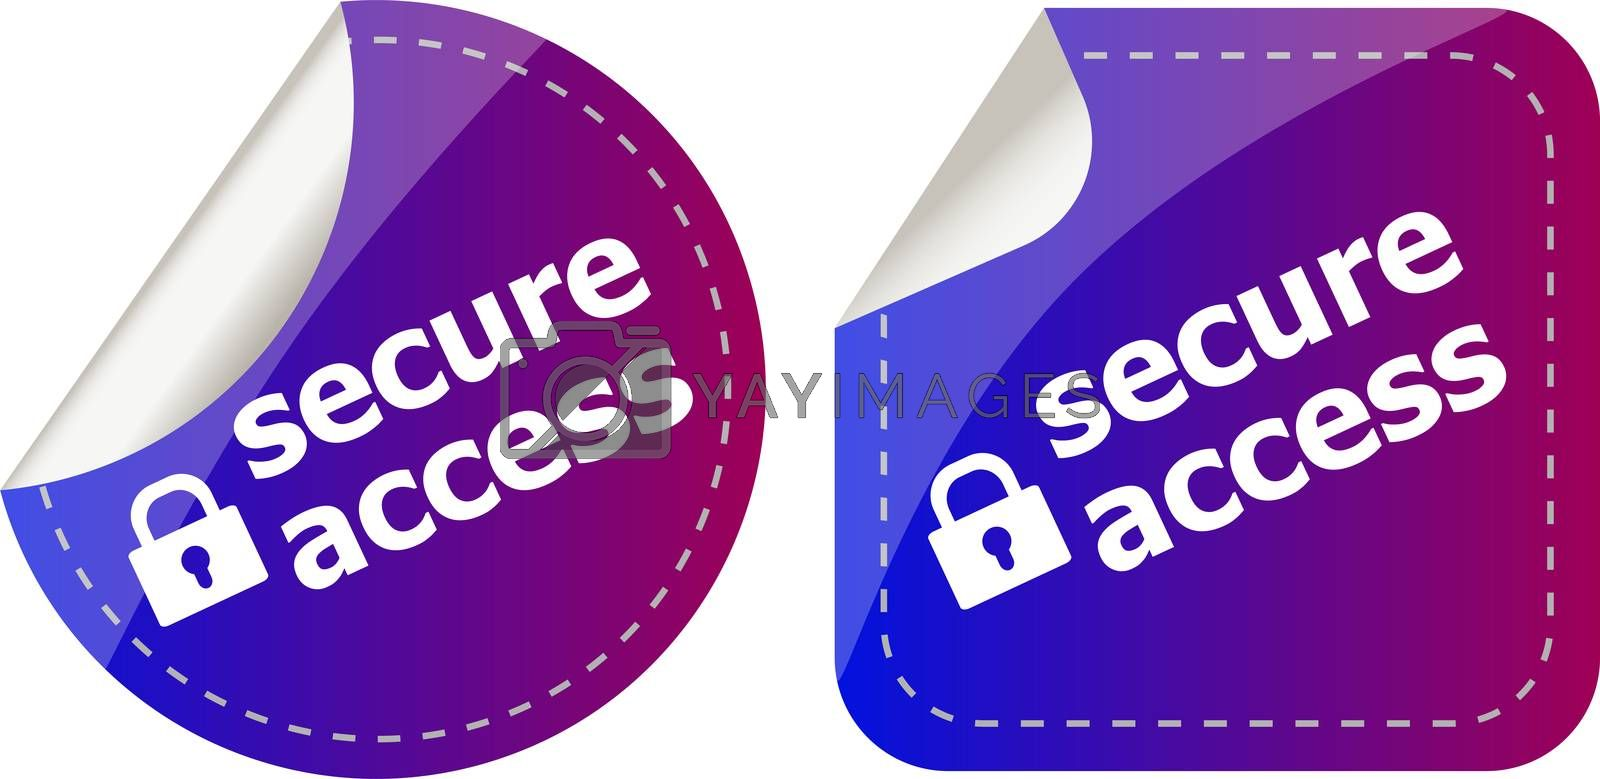 secure access with lock on stickers set isolated on white